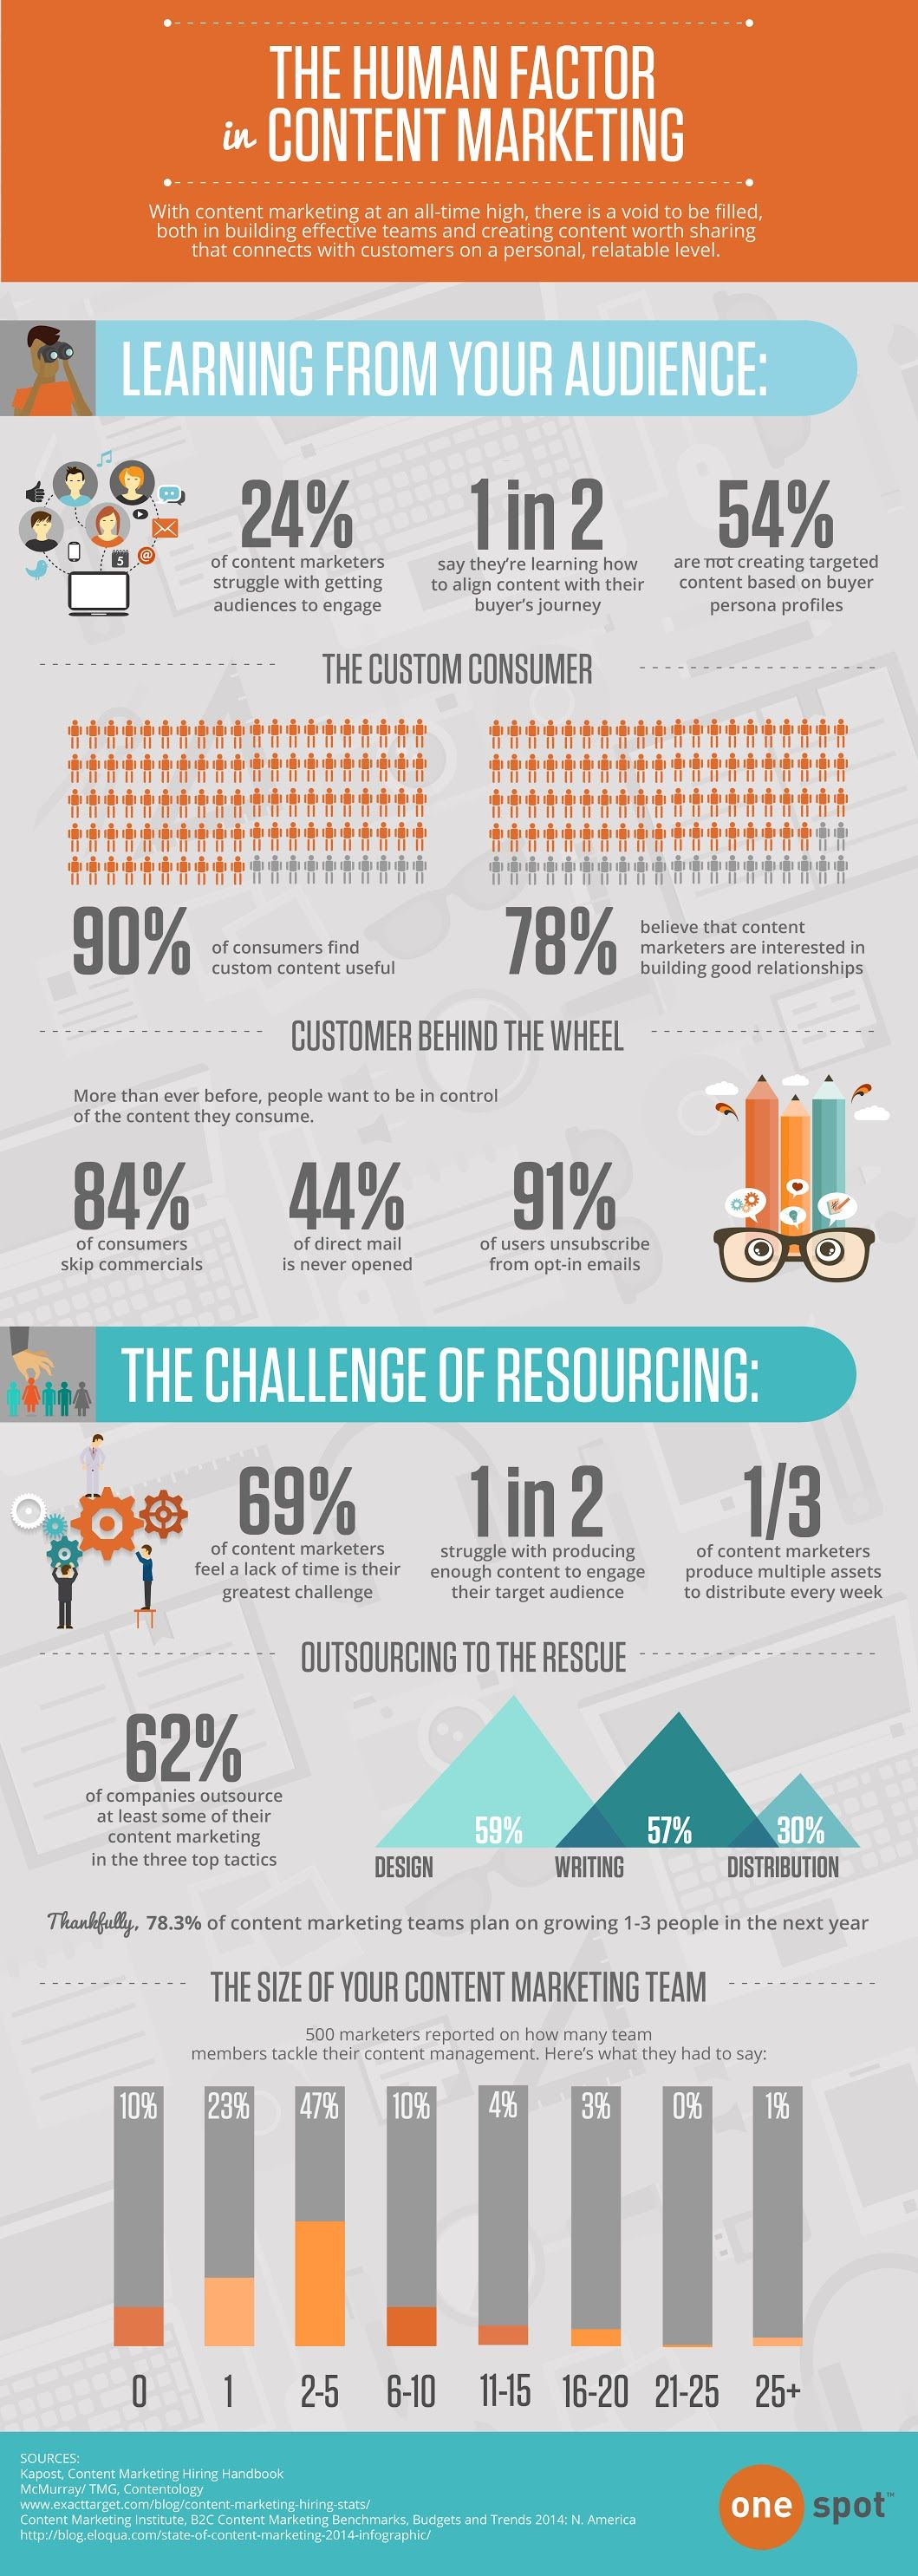 The Human Factor of #ContentMarketing